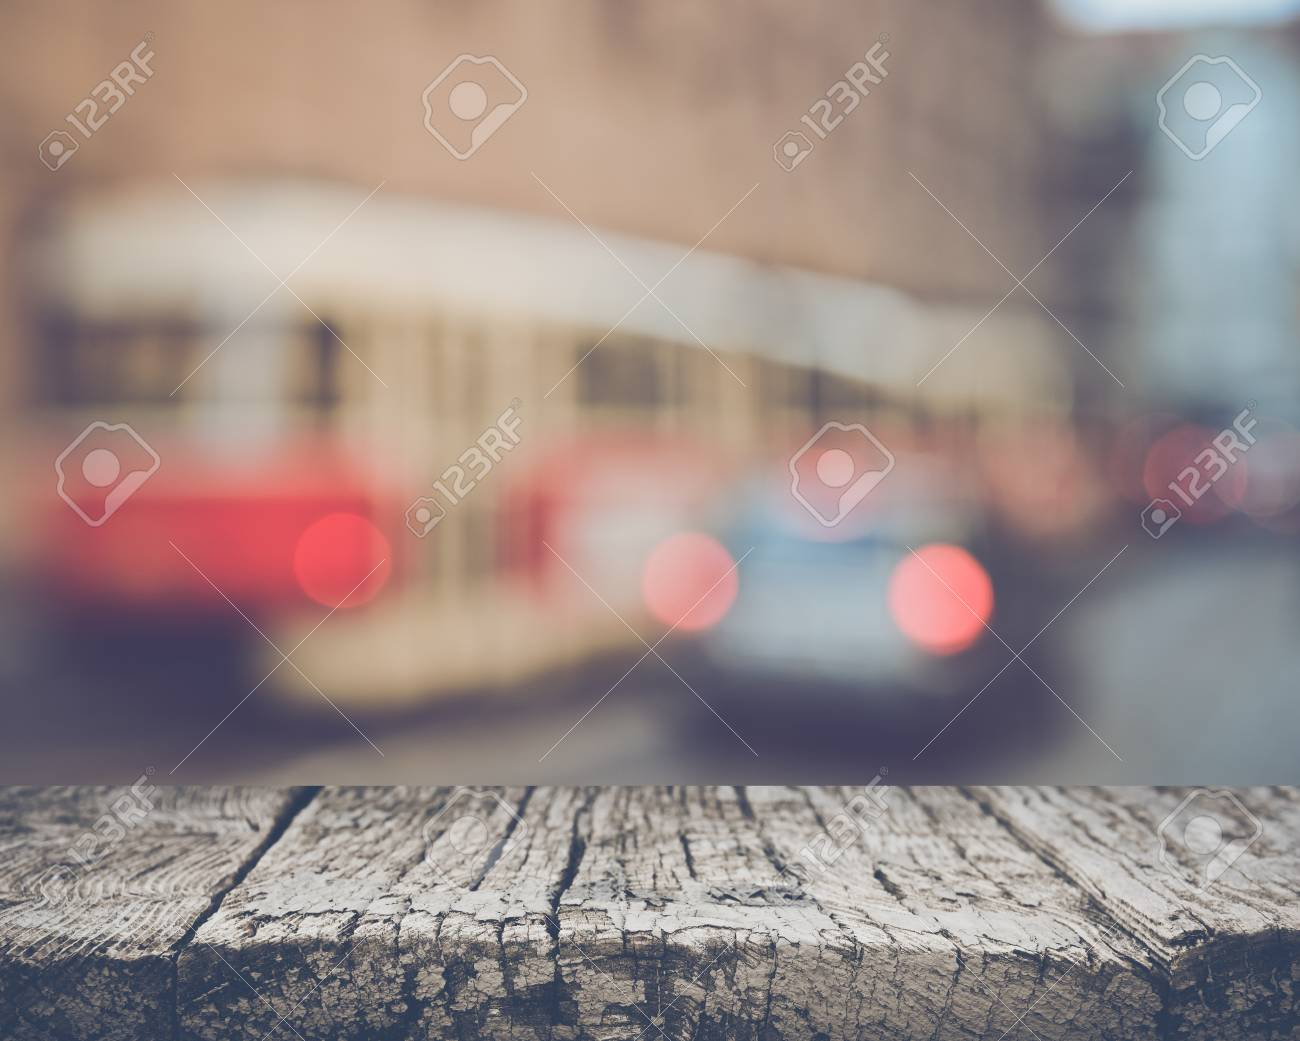 Blurred Train with Retro Style Filter - 55007596